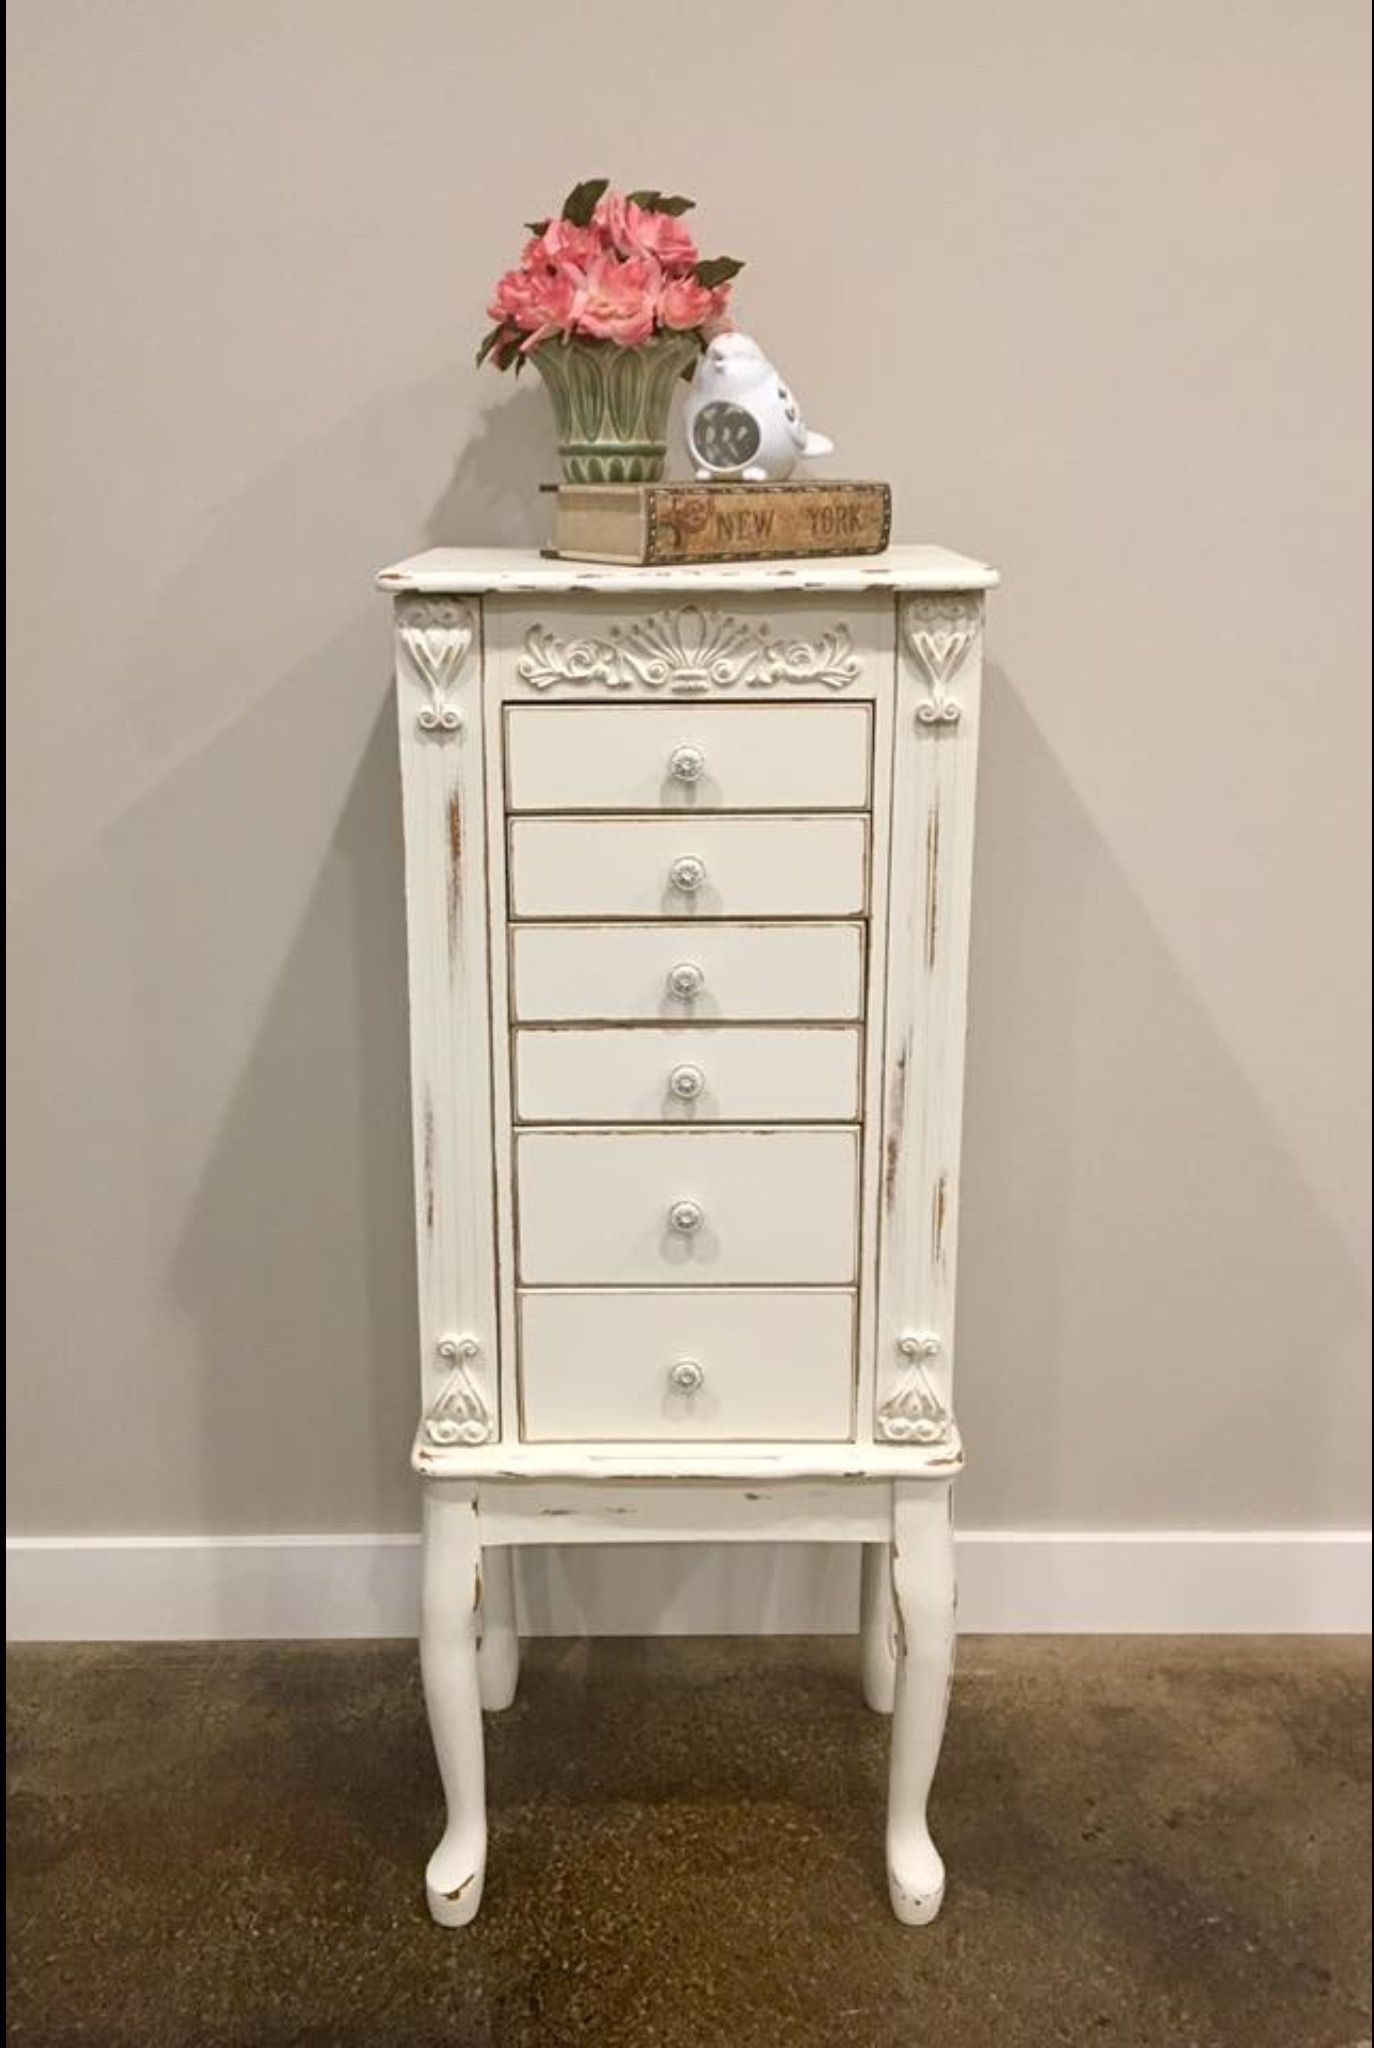 Beautiful Distressed Jewelry Armoire done in Butter Cream Chalk